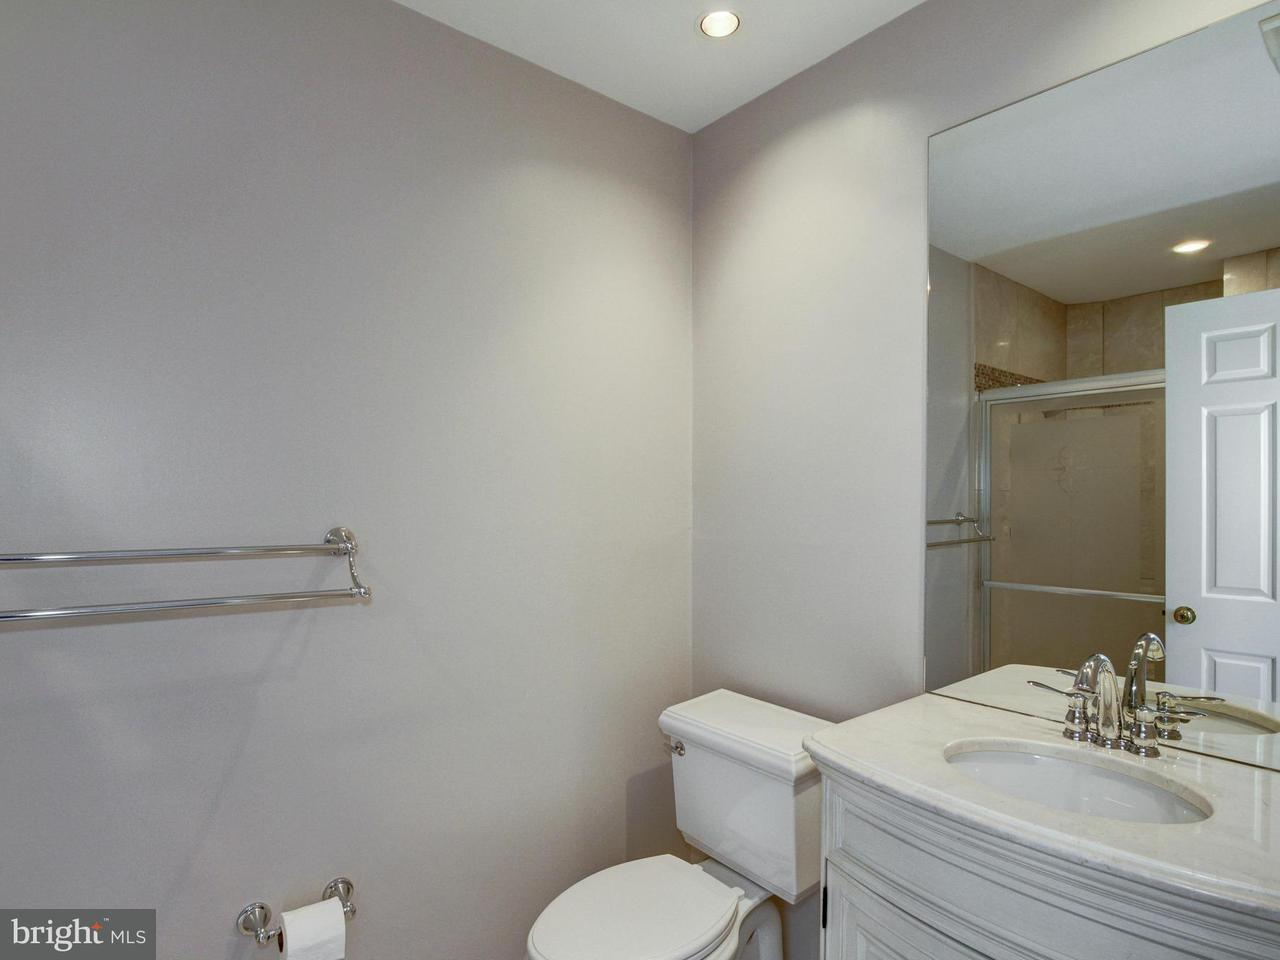 Additional photo for property listing at 4662 Charleston Ter Nw 4662 Charleston Ter Nw Washington, District Of Columbia 20007 Verenigde Staten